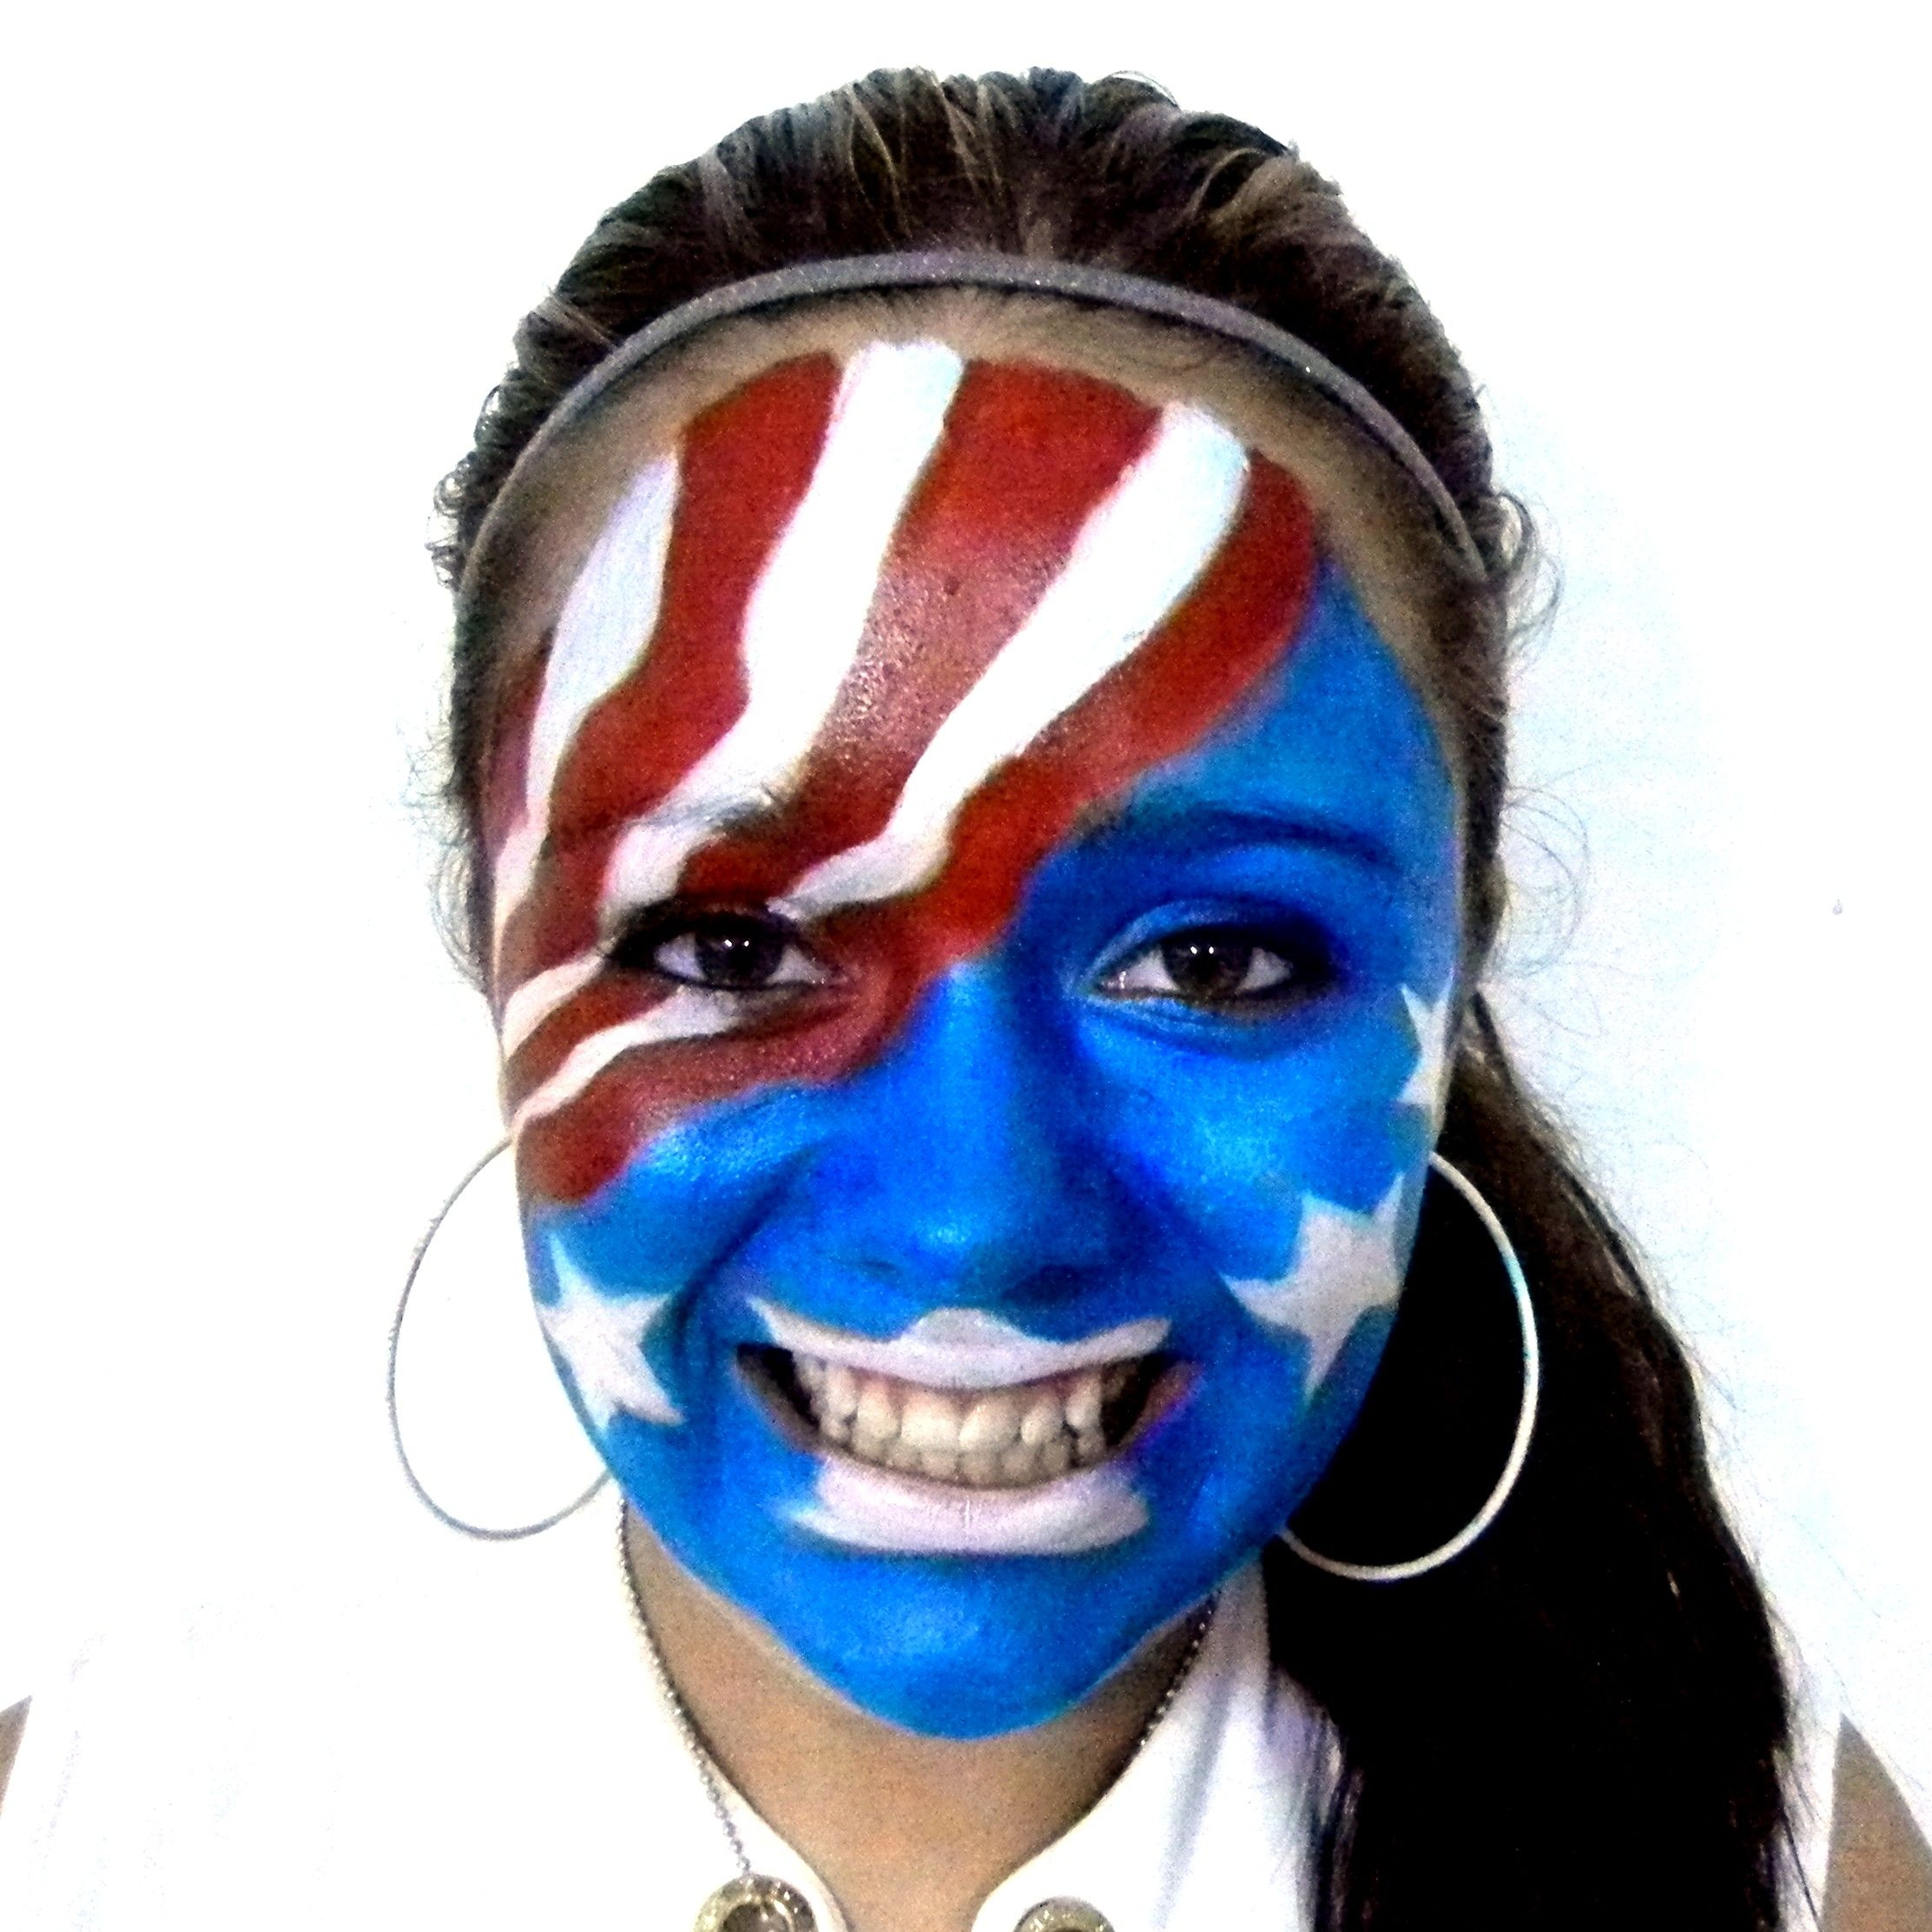 Proud to be an American! Natural 4th of July face paint design ...